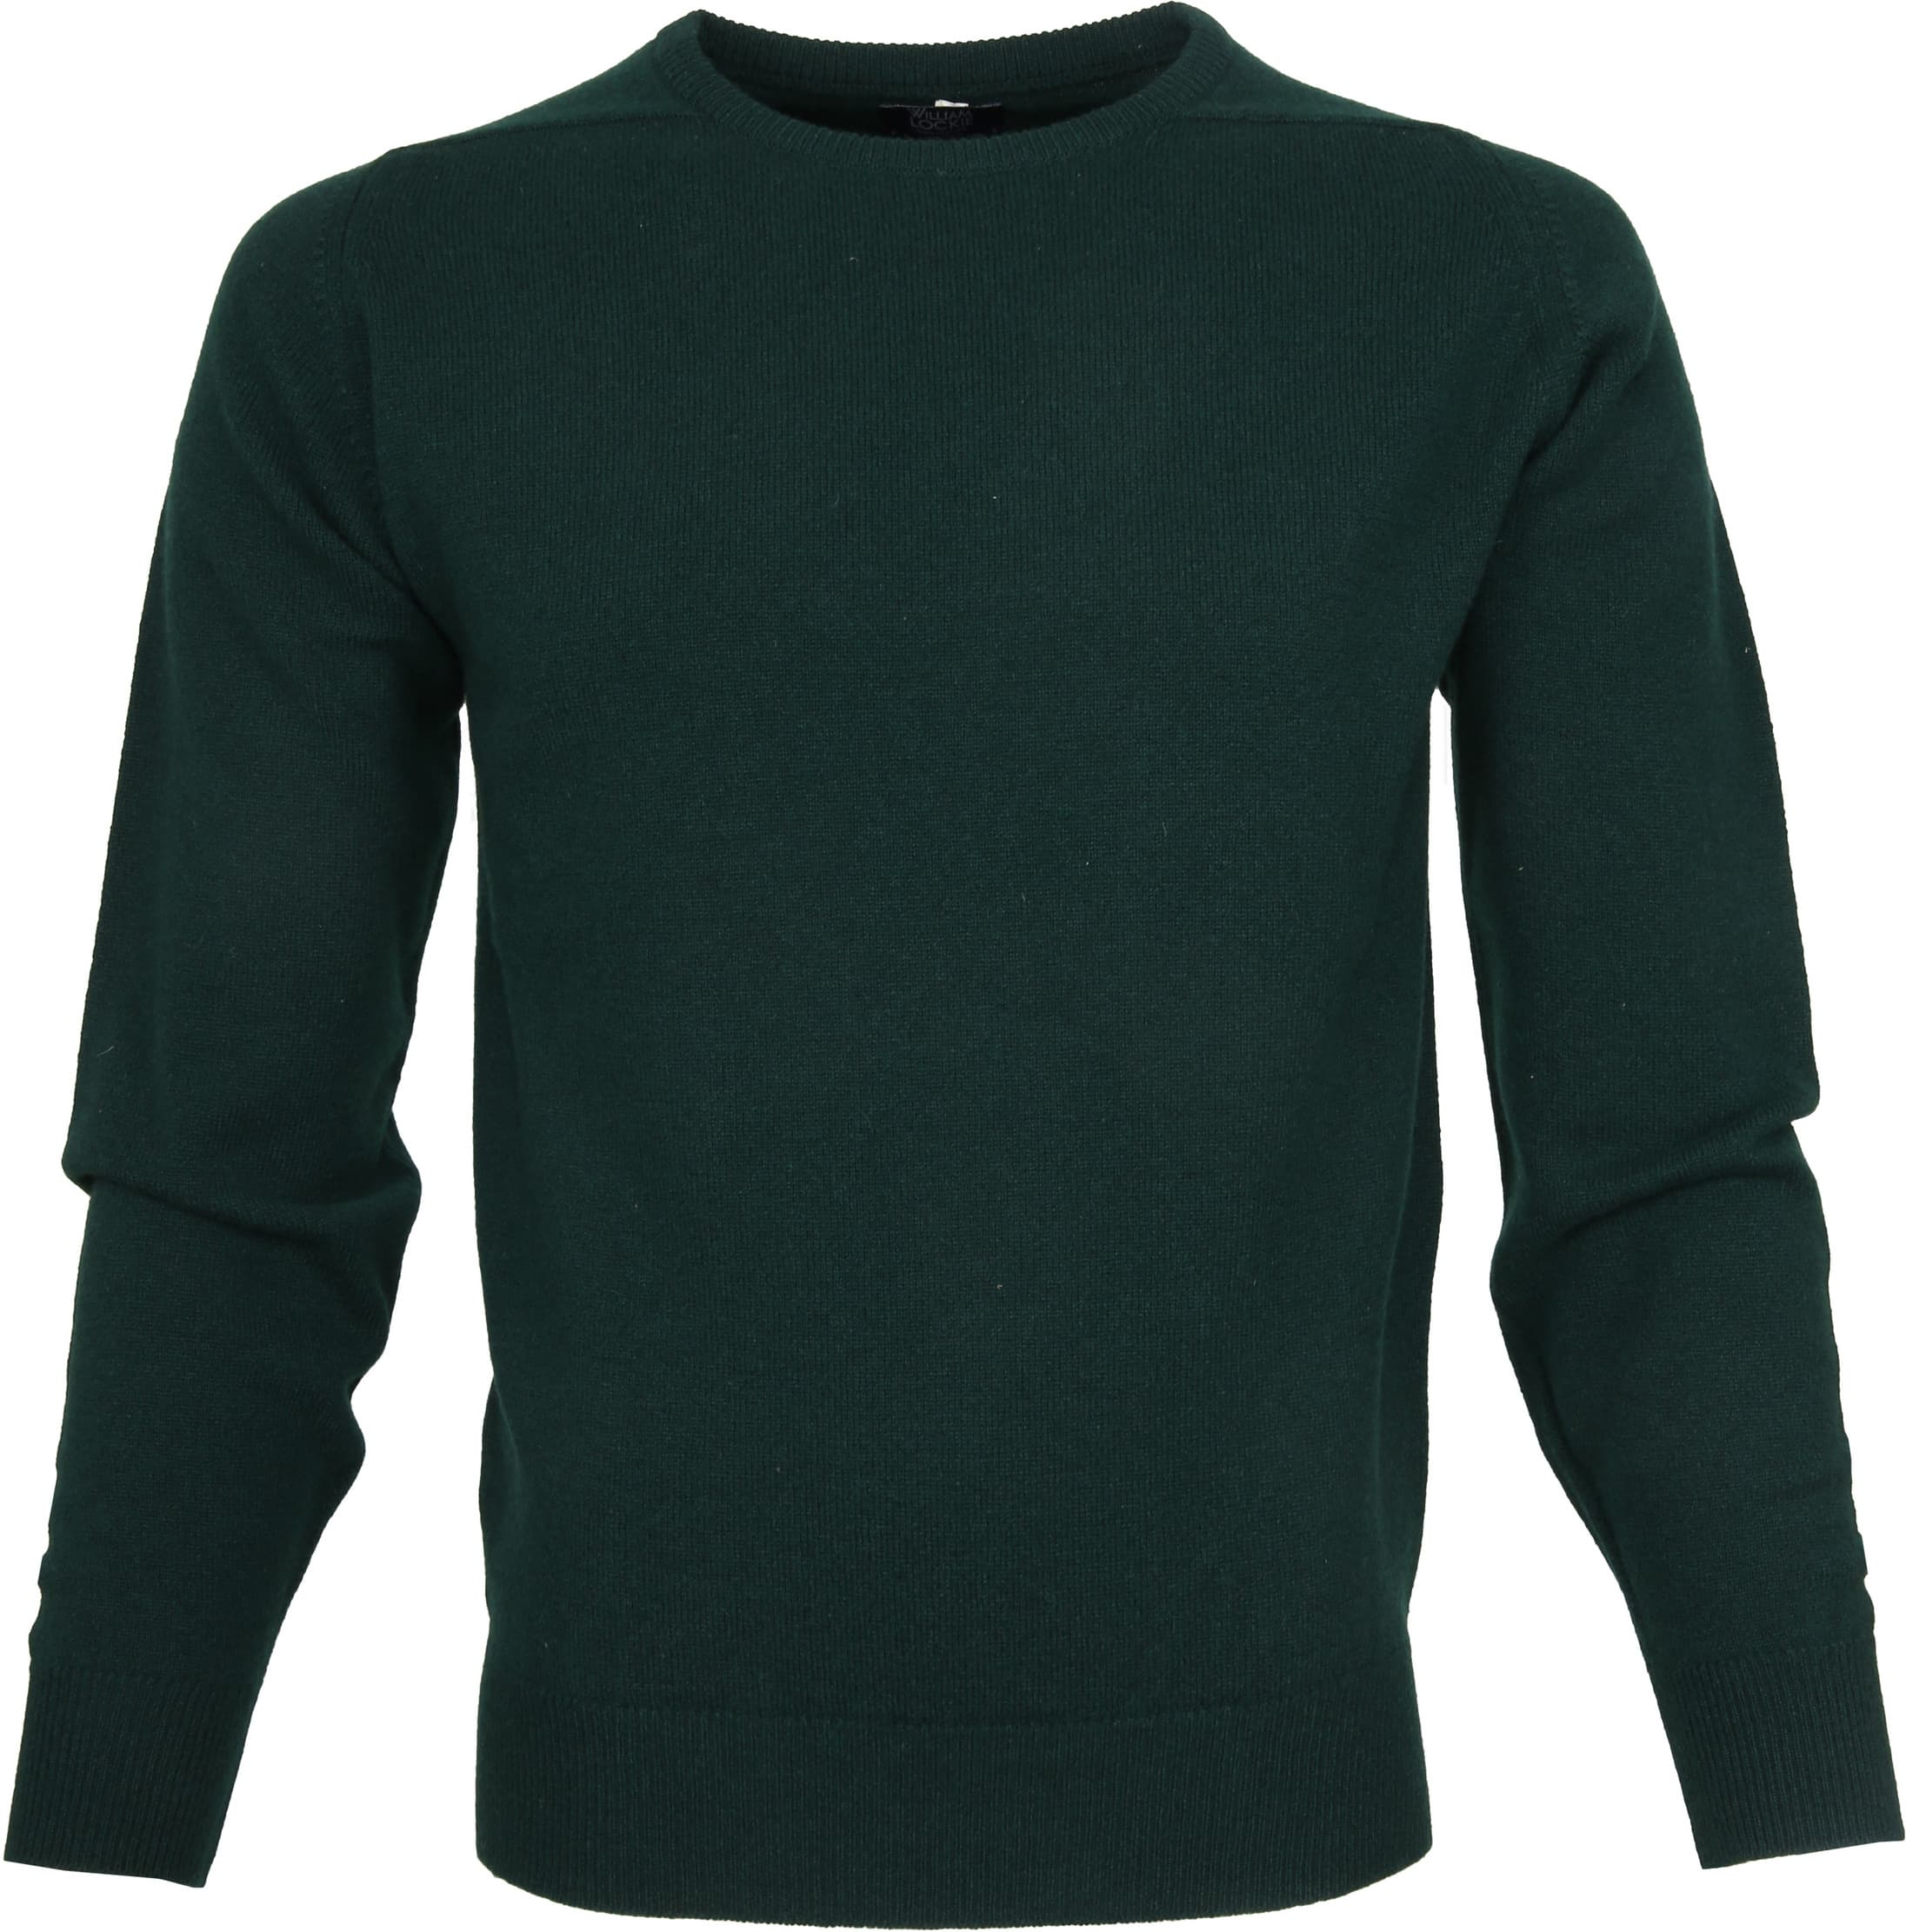 William Lockie Lambswool Mos Groen foto 0